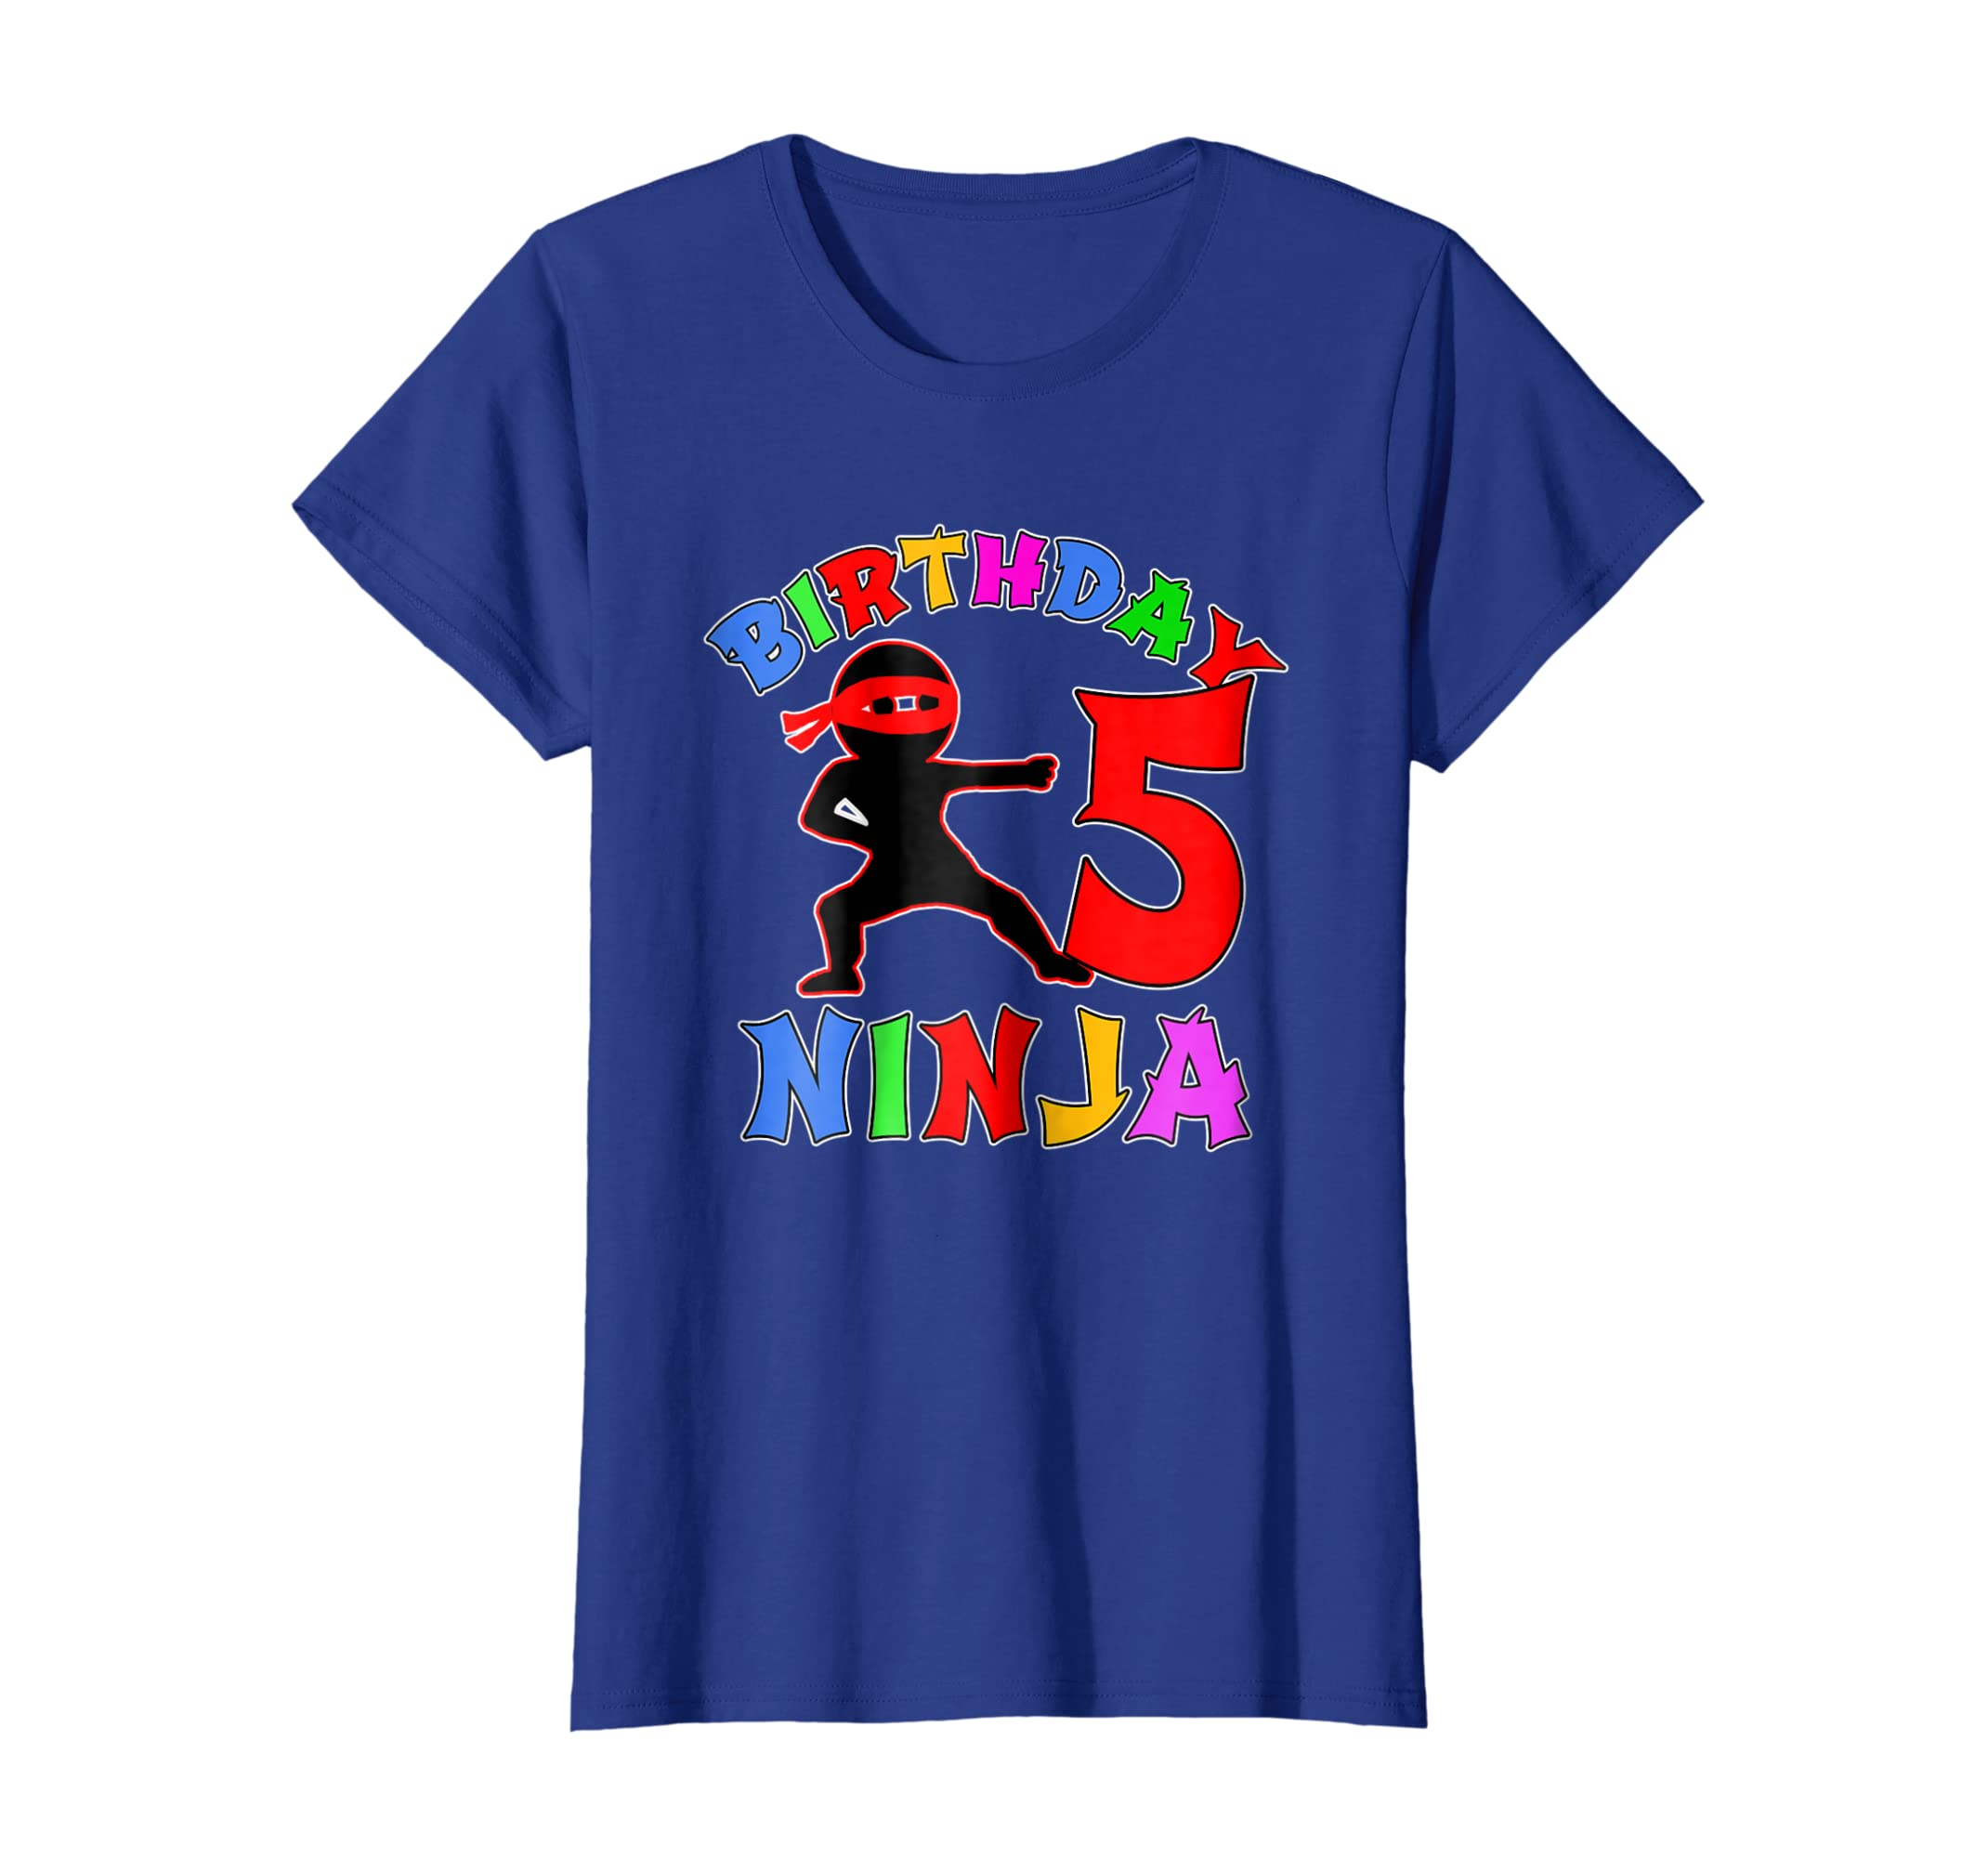 Amazon.com: FIFTH BIRTHDAY NINJA T-shirt Age 5: Clothing